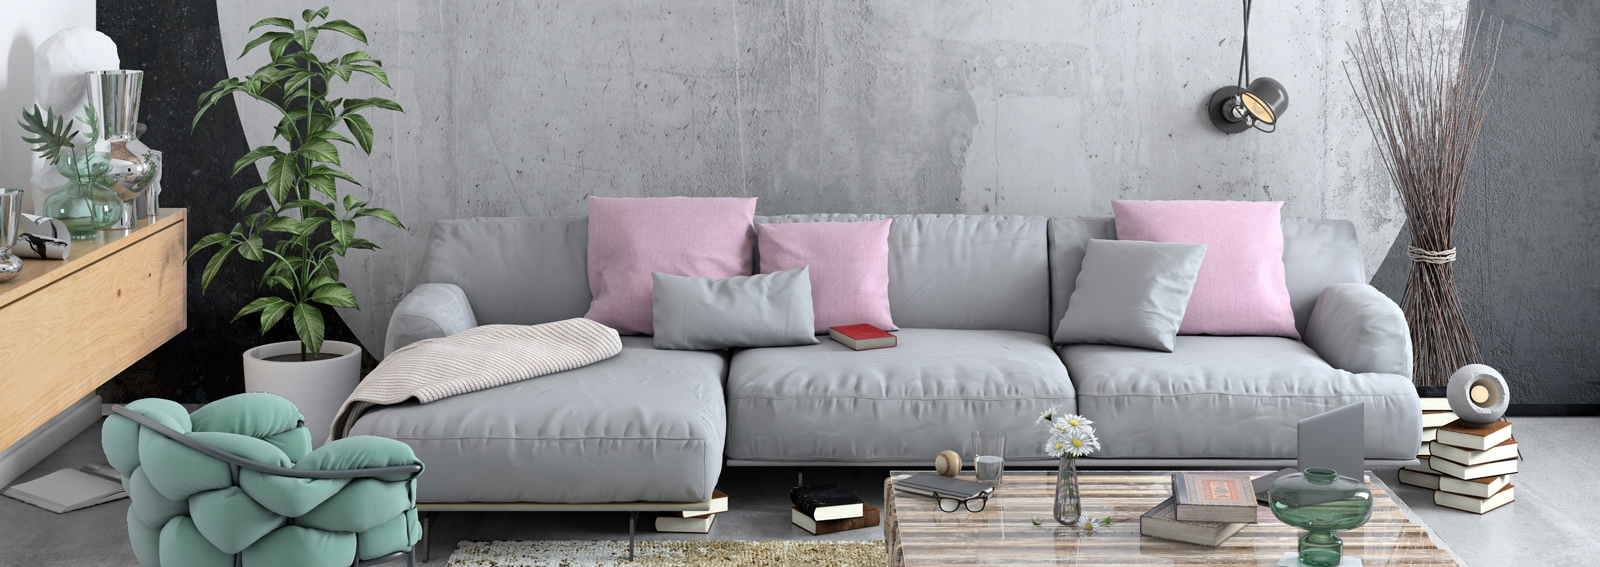 Modern Nordic living room interior with sofa and lots of details